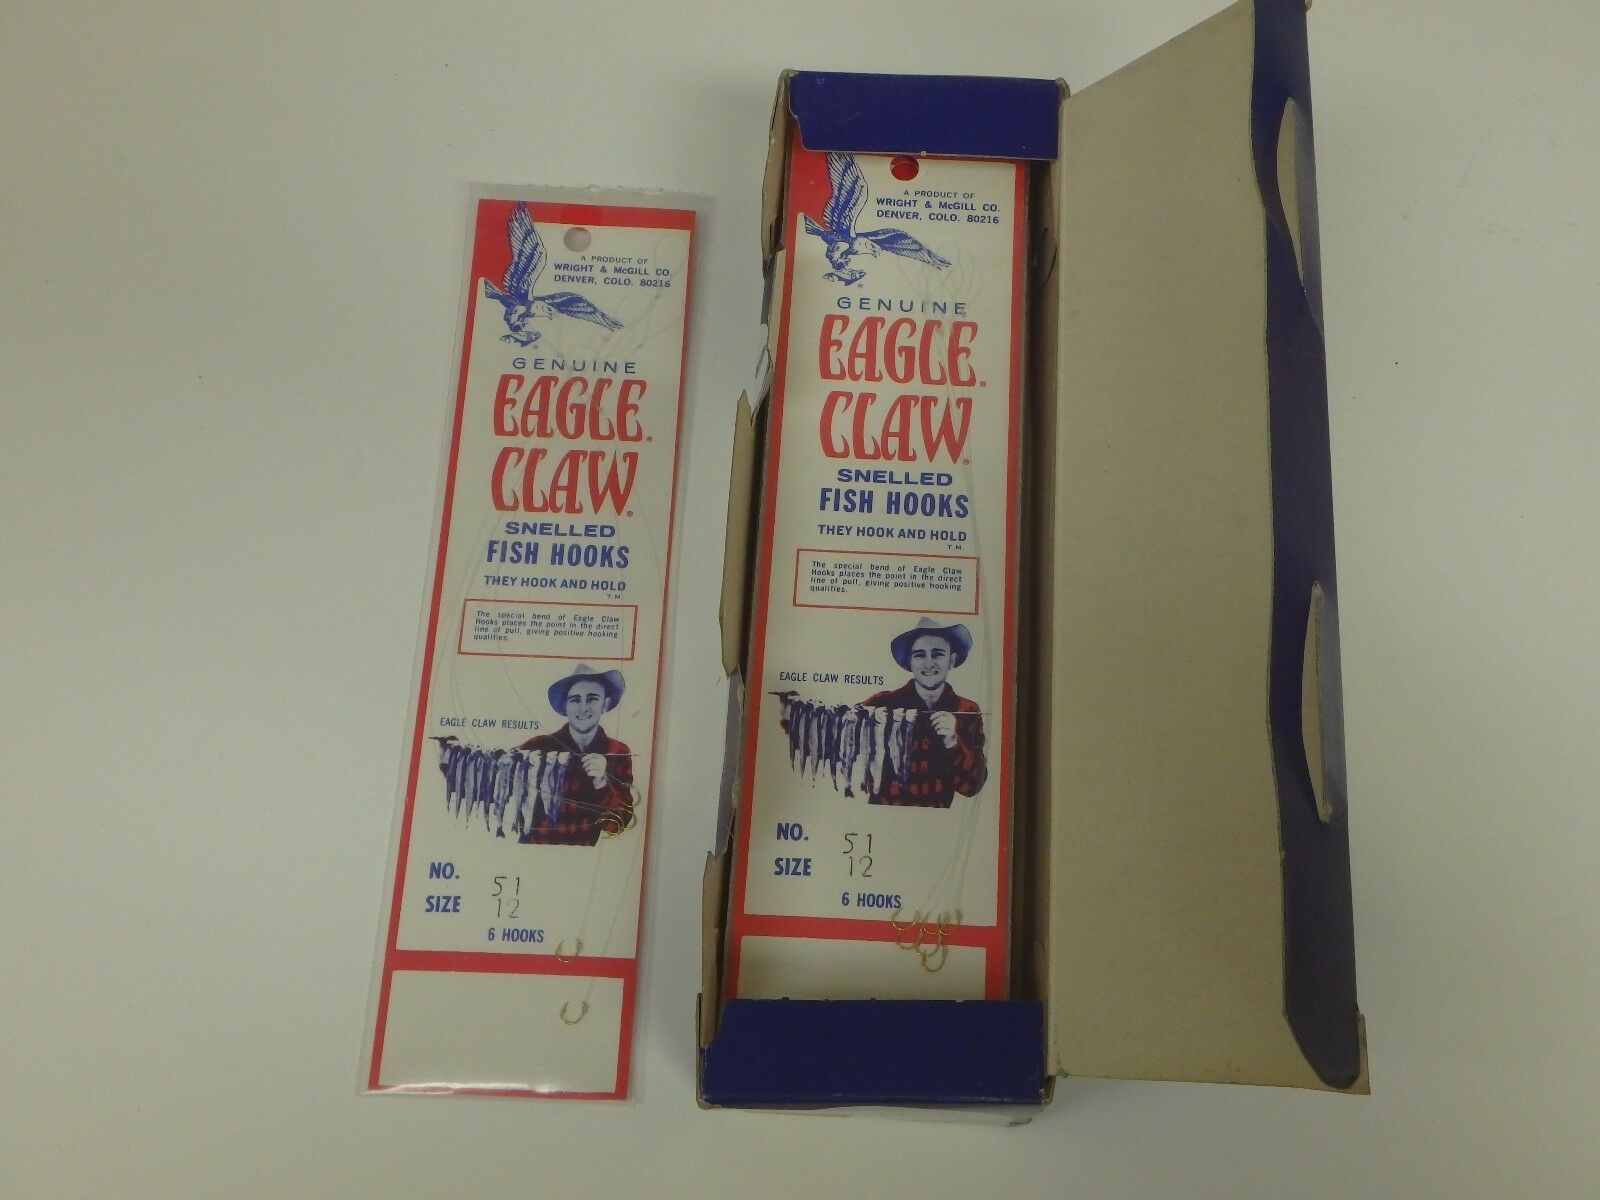 Vintage Eagle Claw Wright Dealer Box Grootte 12 Snelled Fishing goud Fishing Hooks